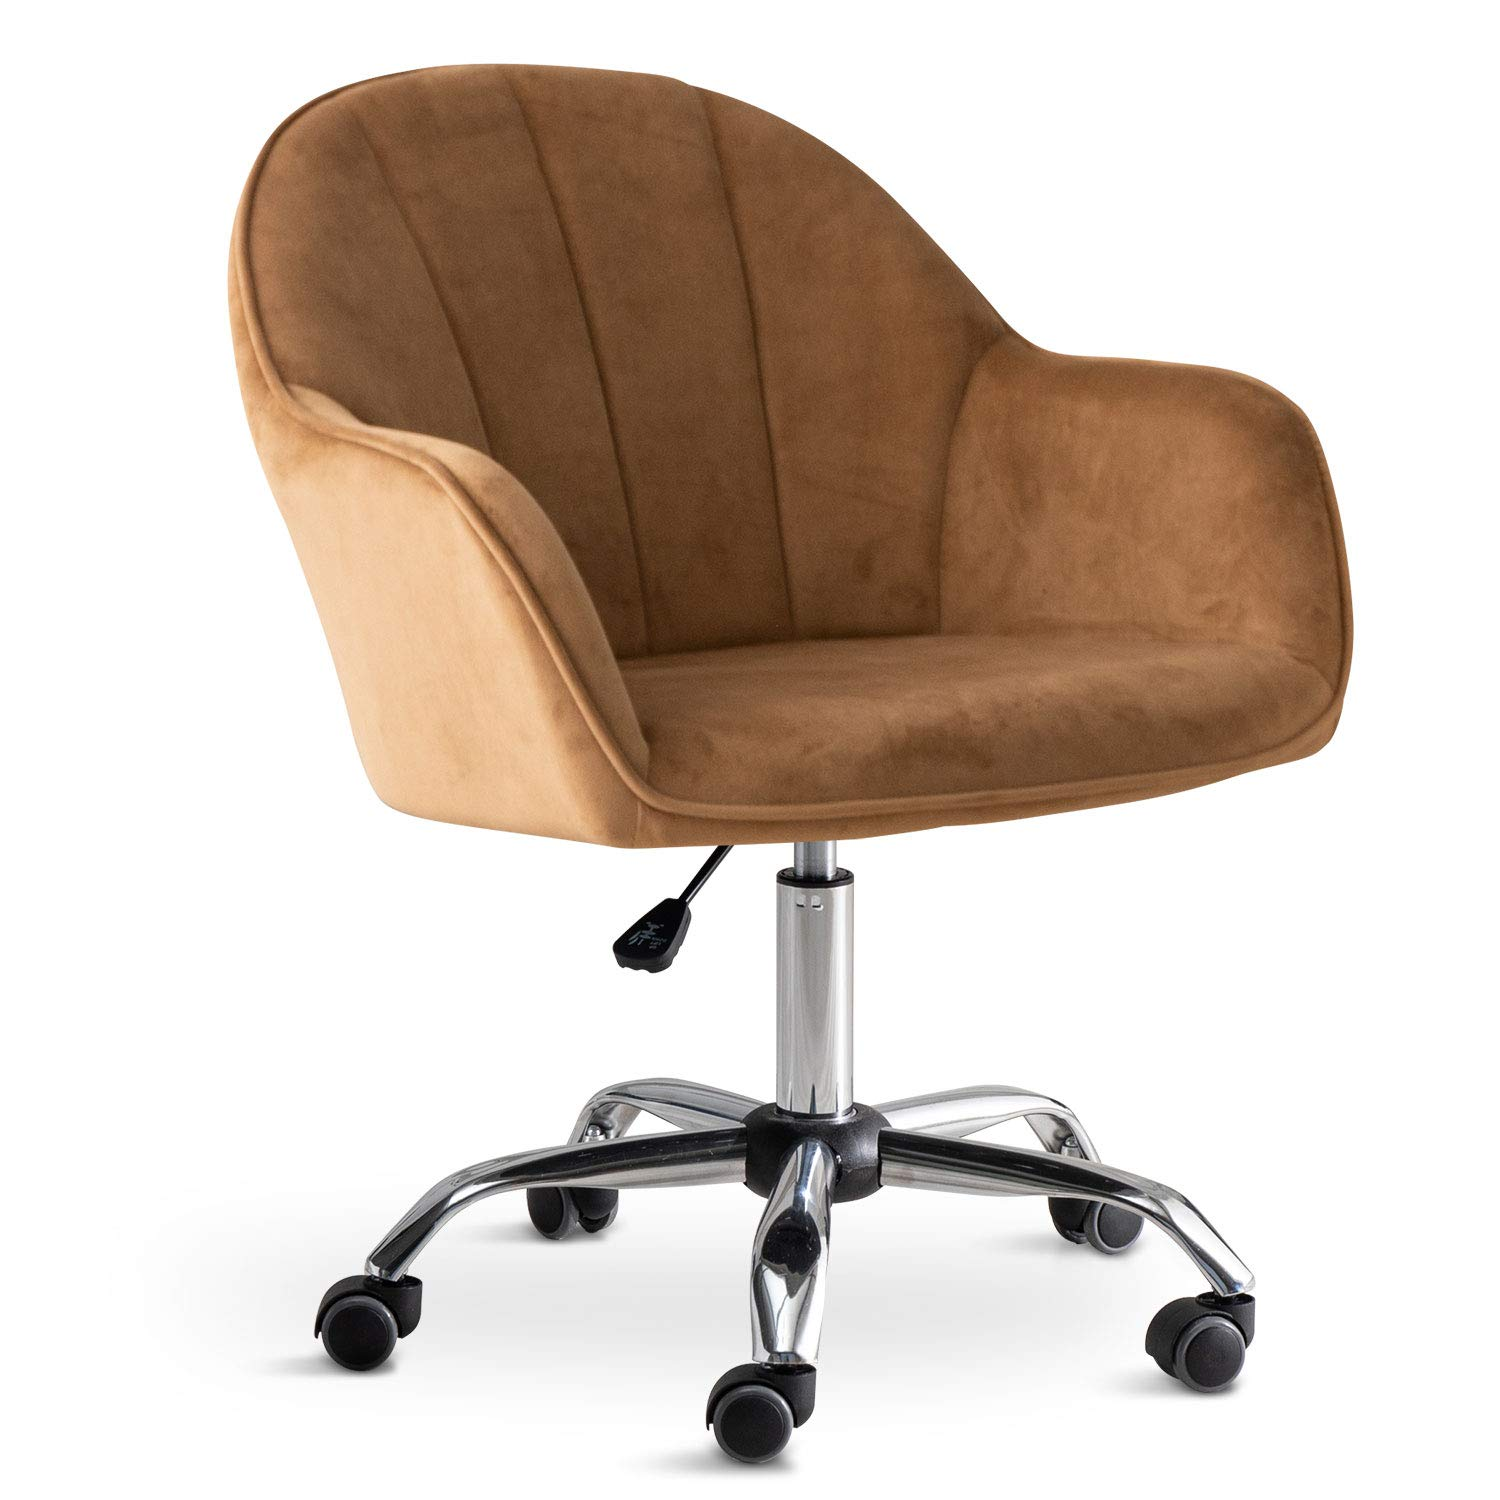 Modern Mid-Back Home Office Velvet Chair with Wheels, Ergonomic Executive Task Swivel Shell Vanity Chair with Arms, Adjustable Height for Study Room Living Room Bedroom and Makeup (Brown)